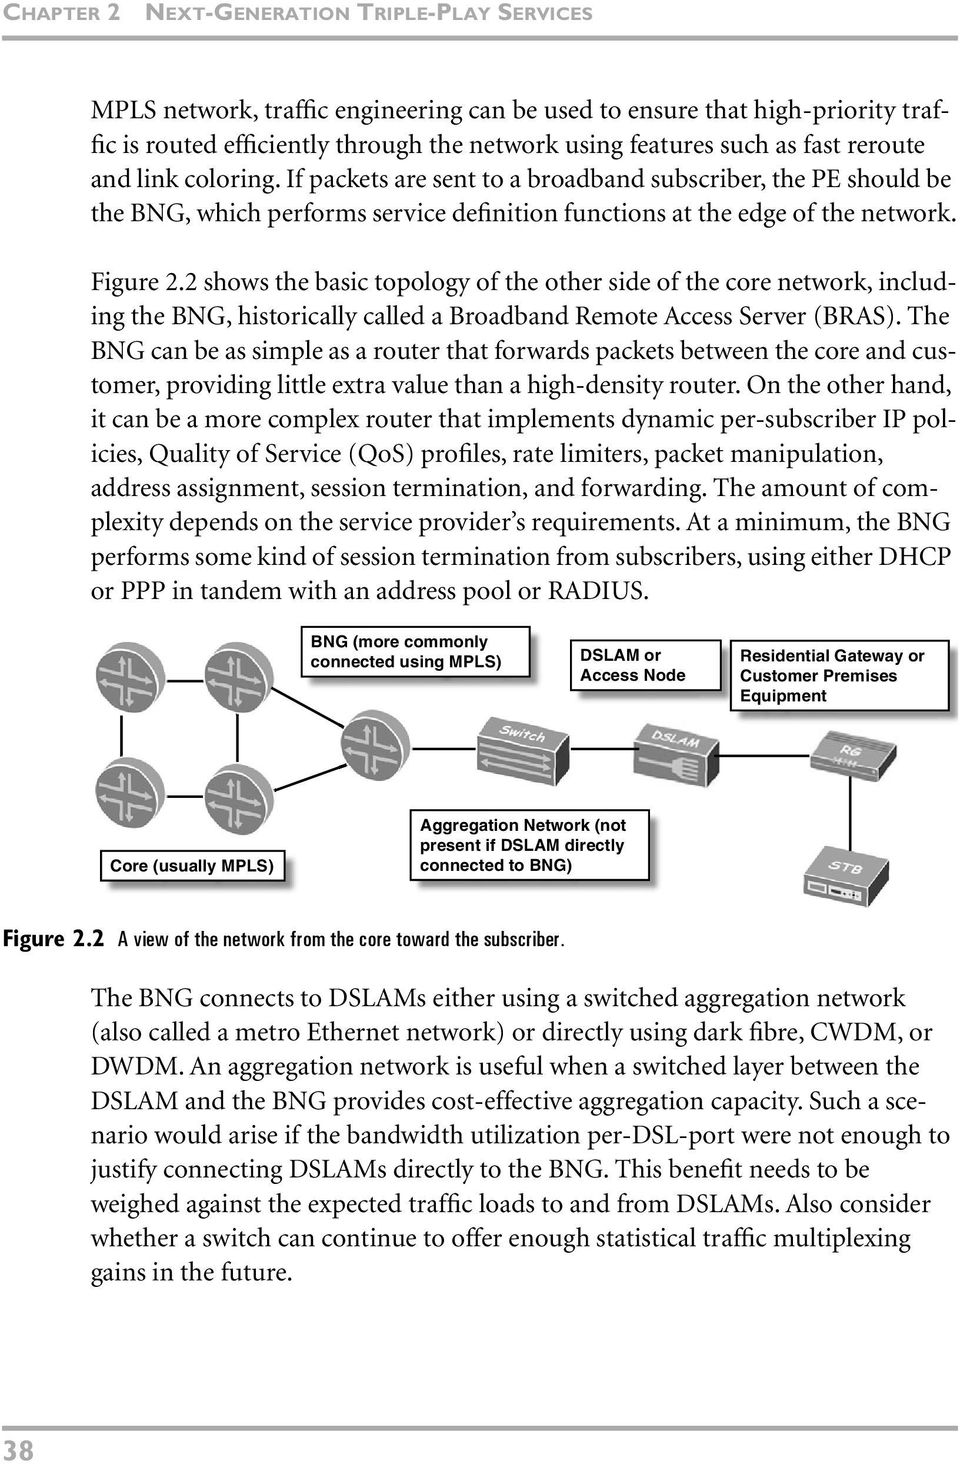 2 shows the basic topology of the other side of the core network, including the BNG, historically called a Broadband Remote Access Server (BRAS).